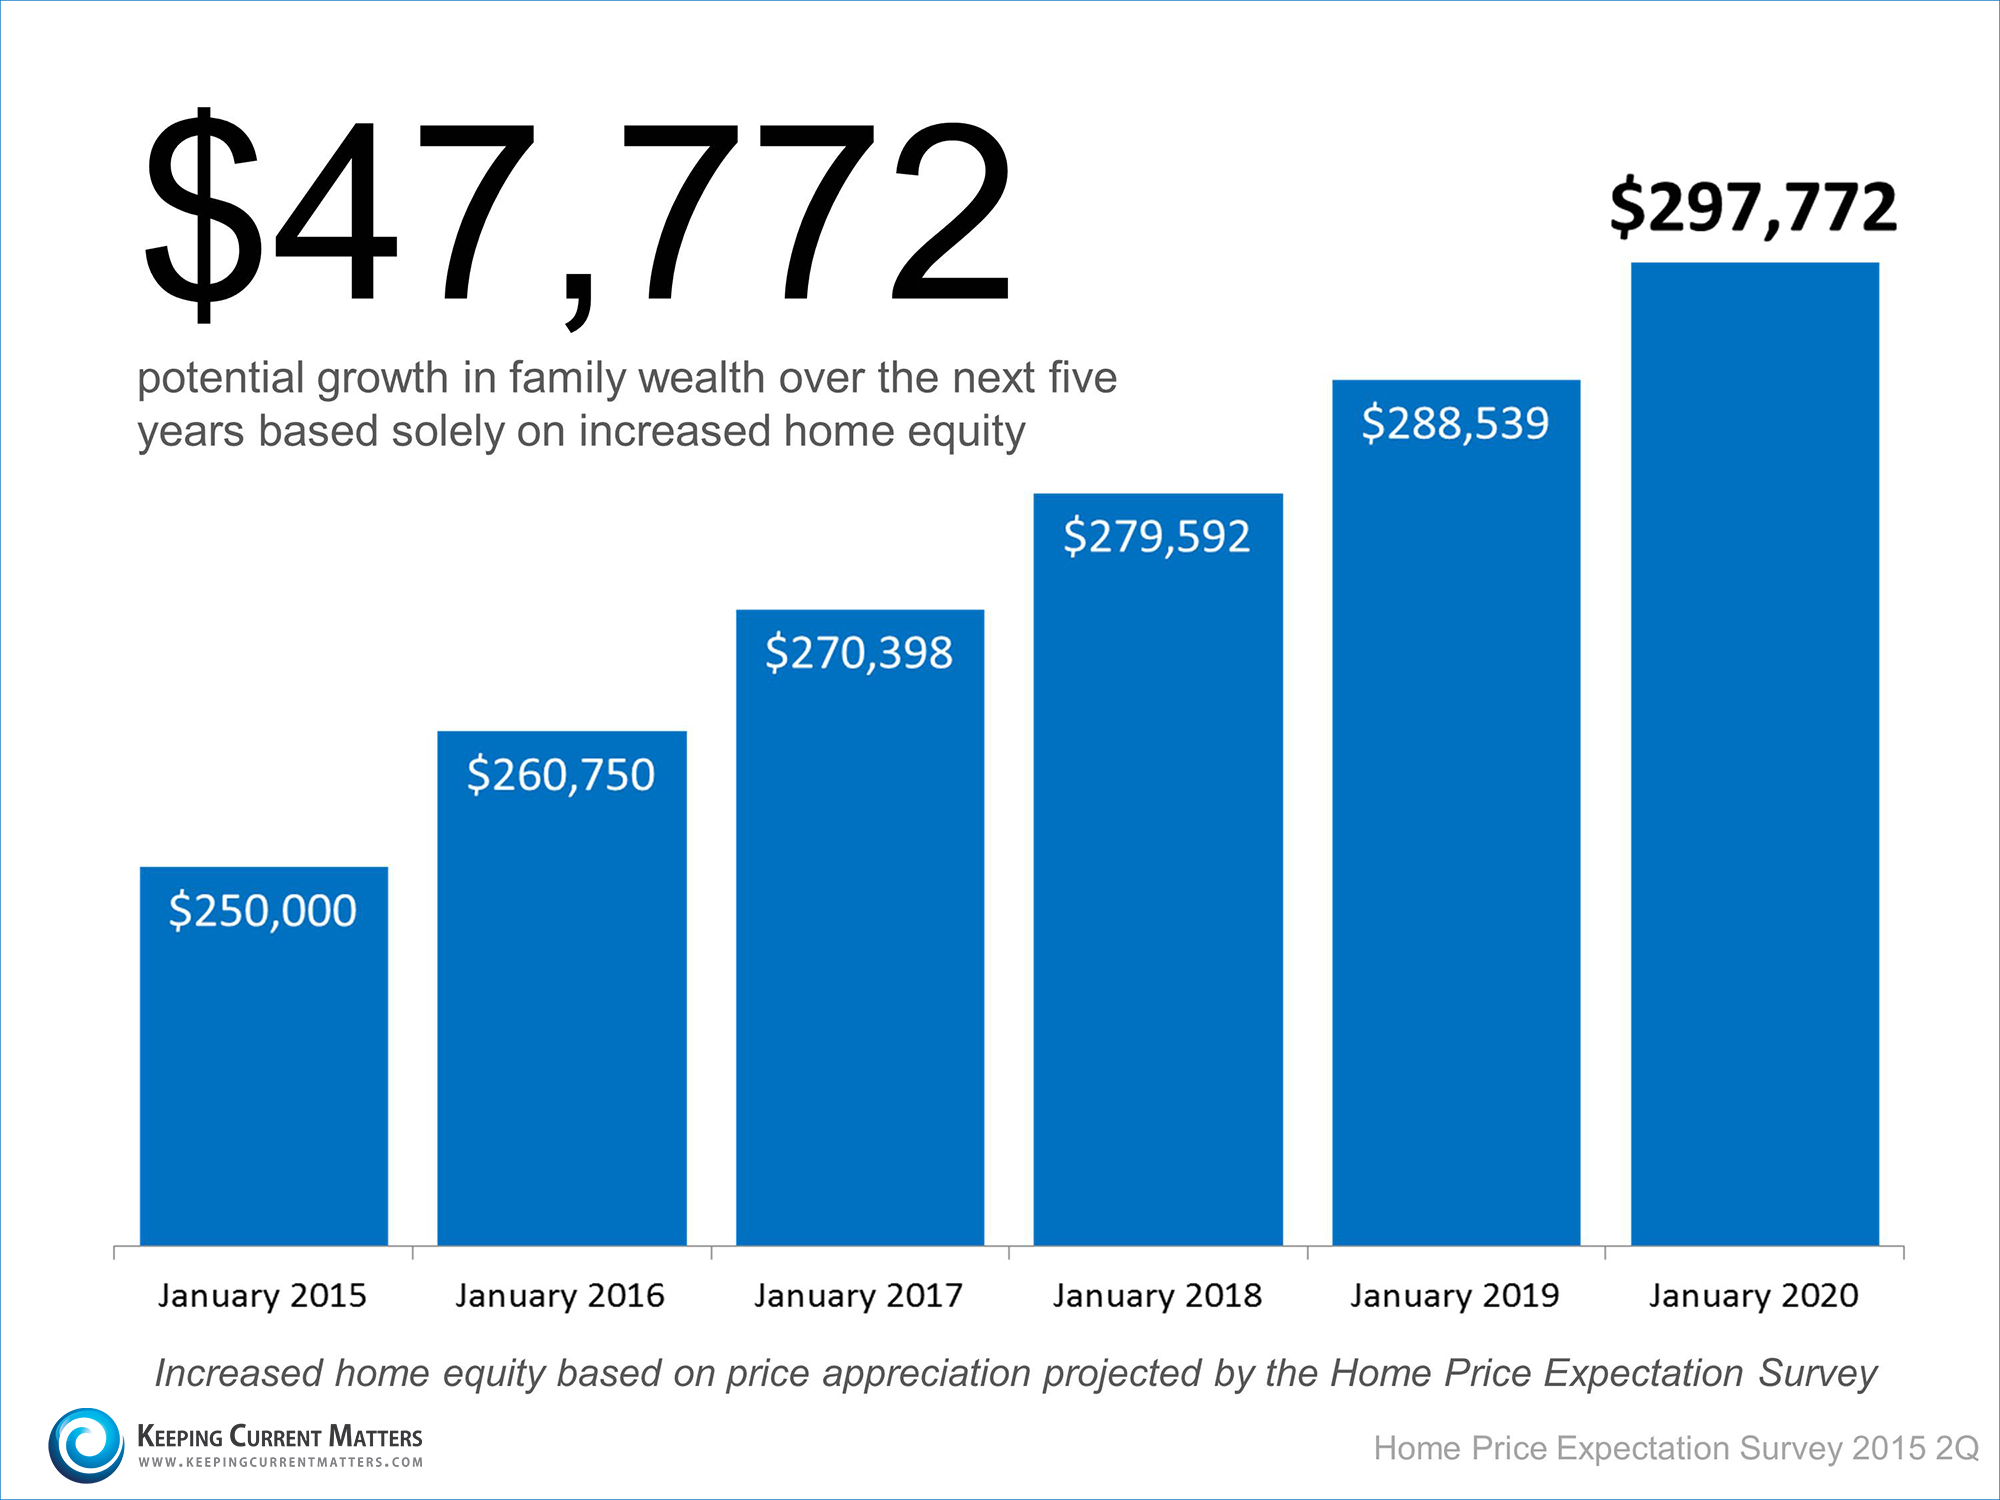 Home Price Appreciation | Keeping Current Matters